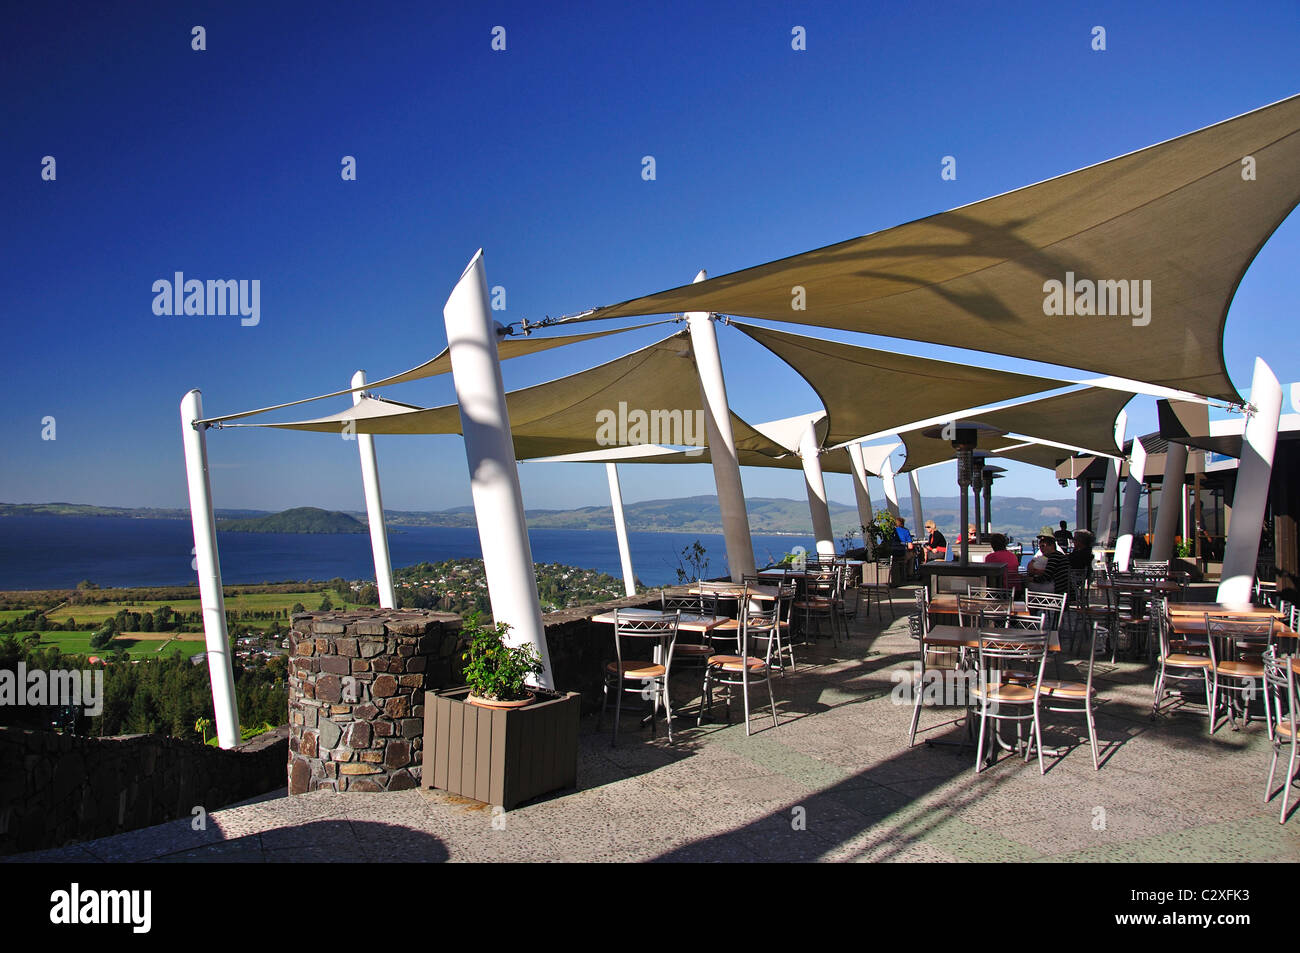 skyline restaurant new zealand stock photos skyline restaurant new zealand stock images alamy. Black Bedroom Furniture Sets. Home Design Ideas